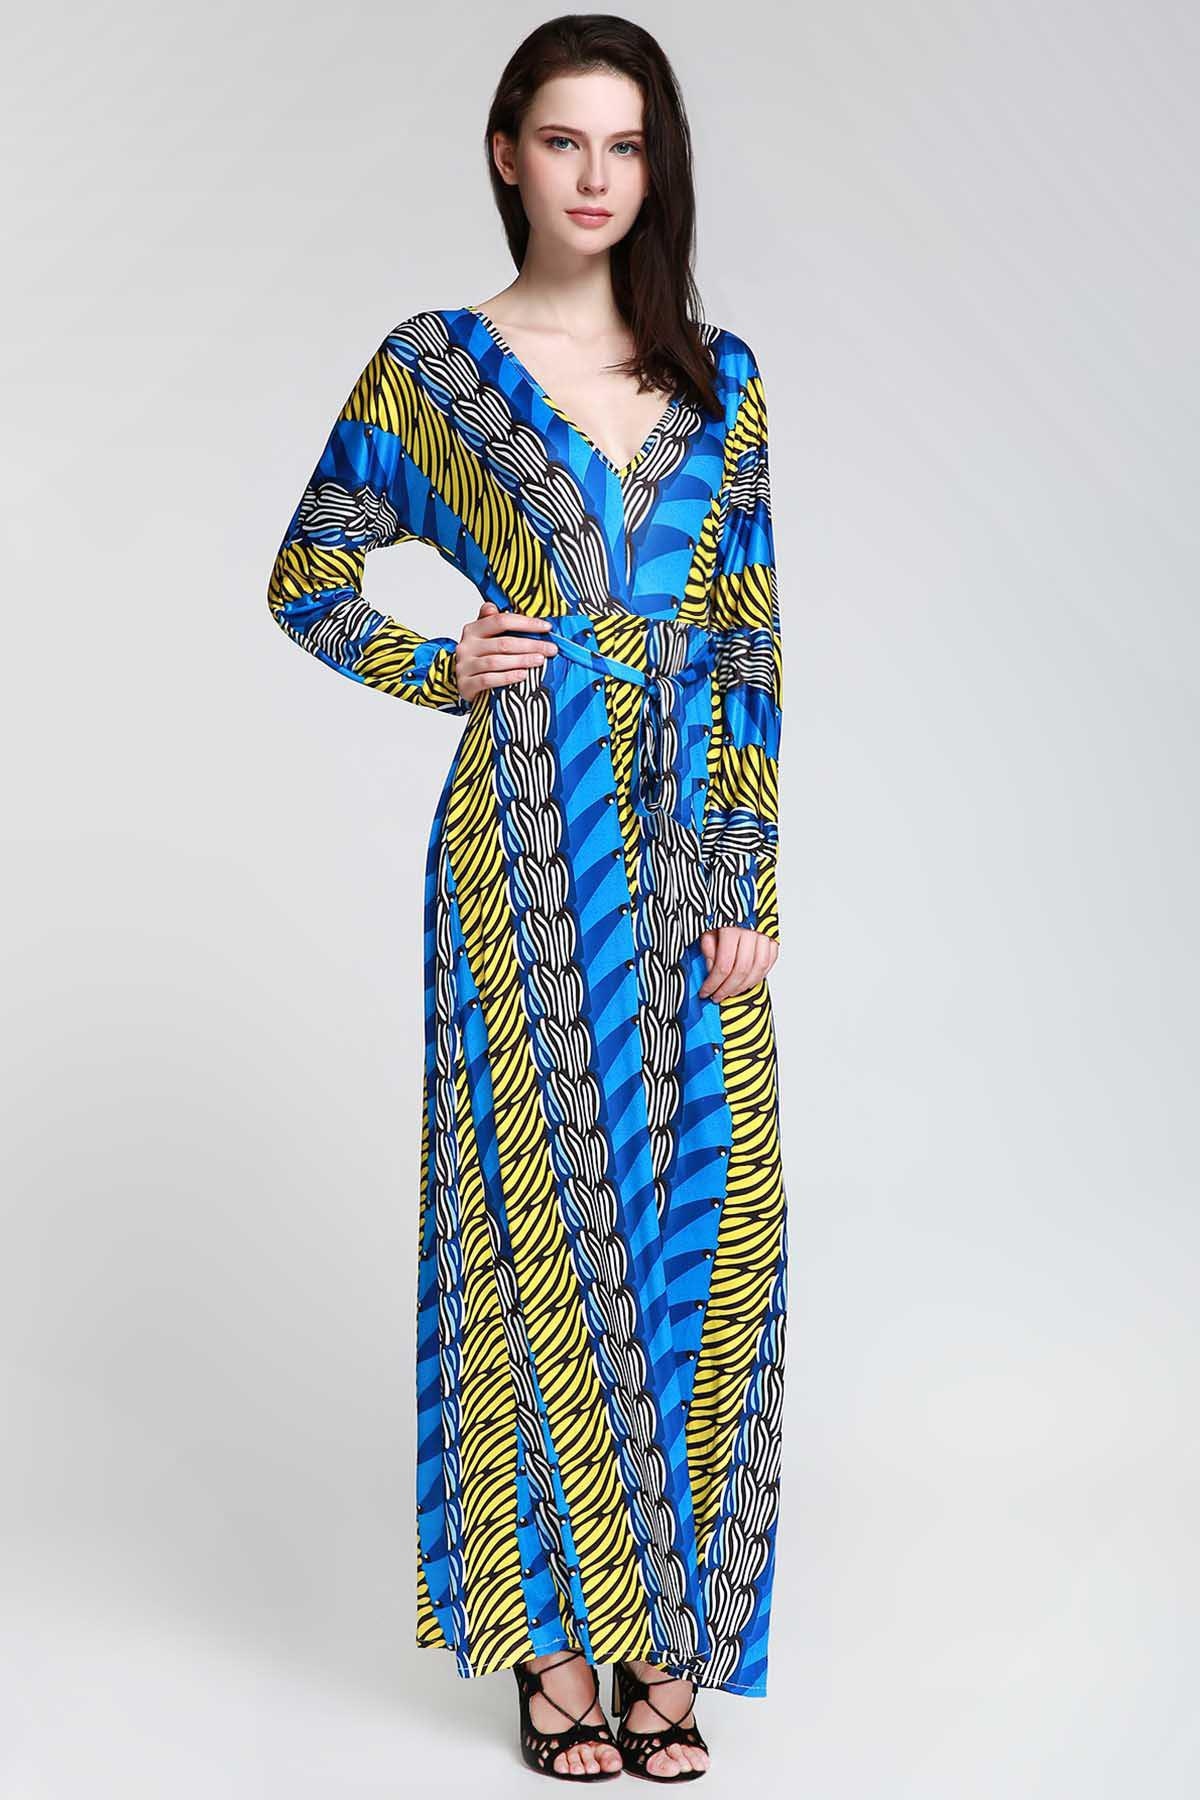 a2853640855 2019 Plunge Long Sleeve Printed Maxi Dress